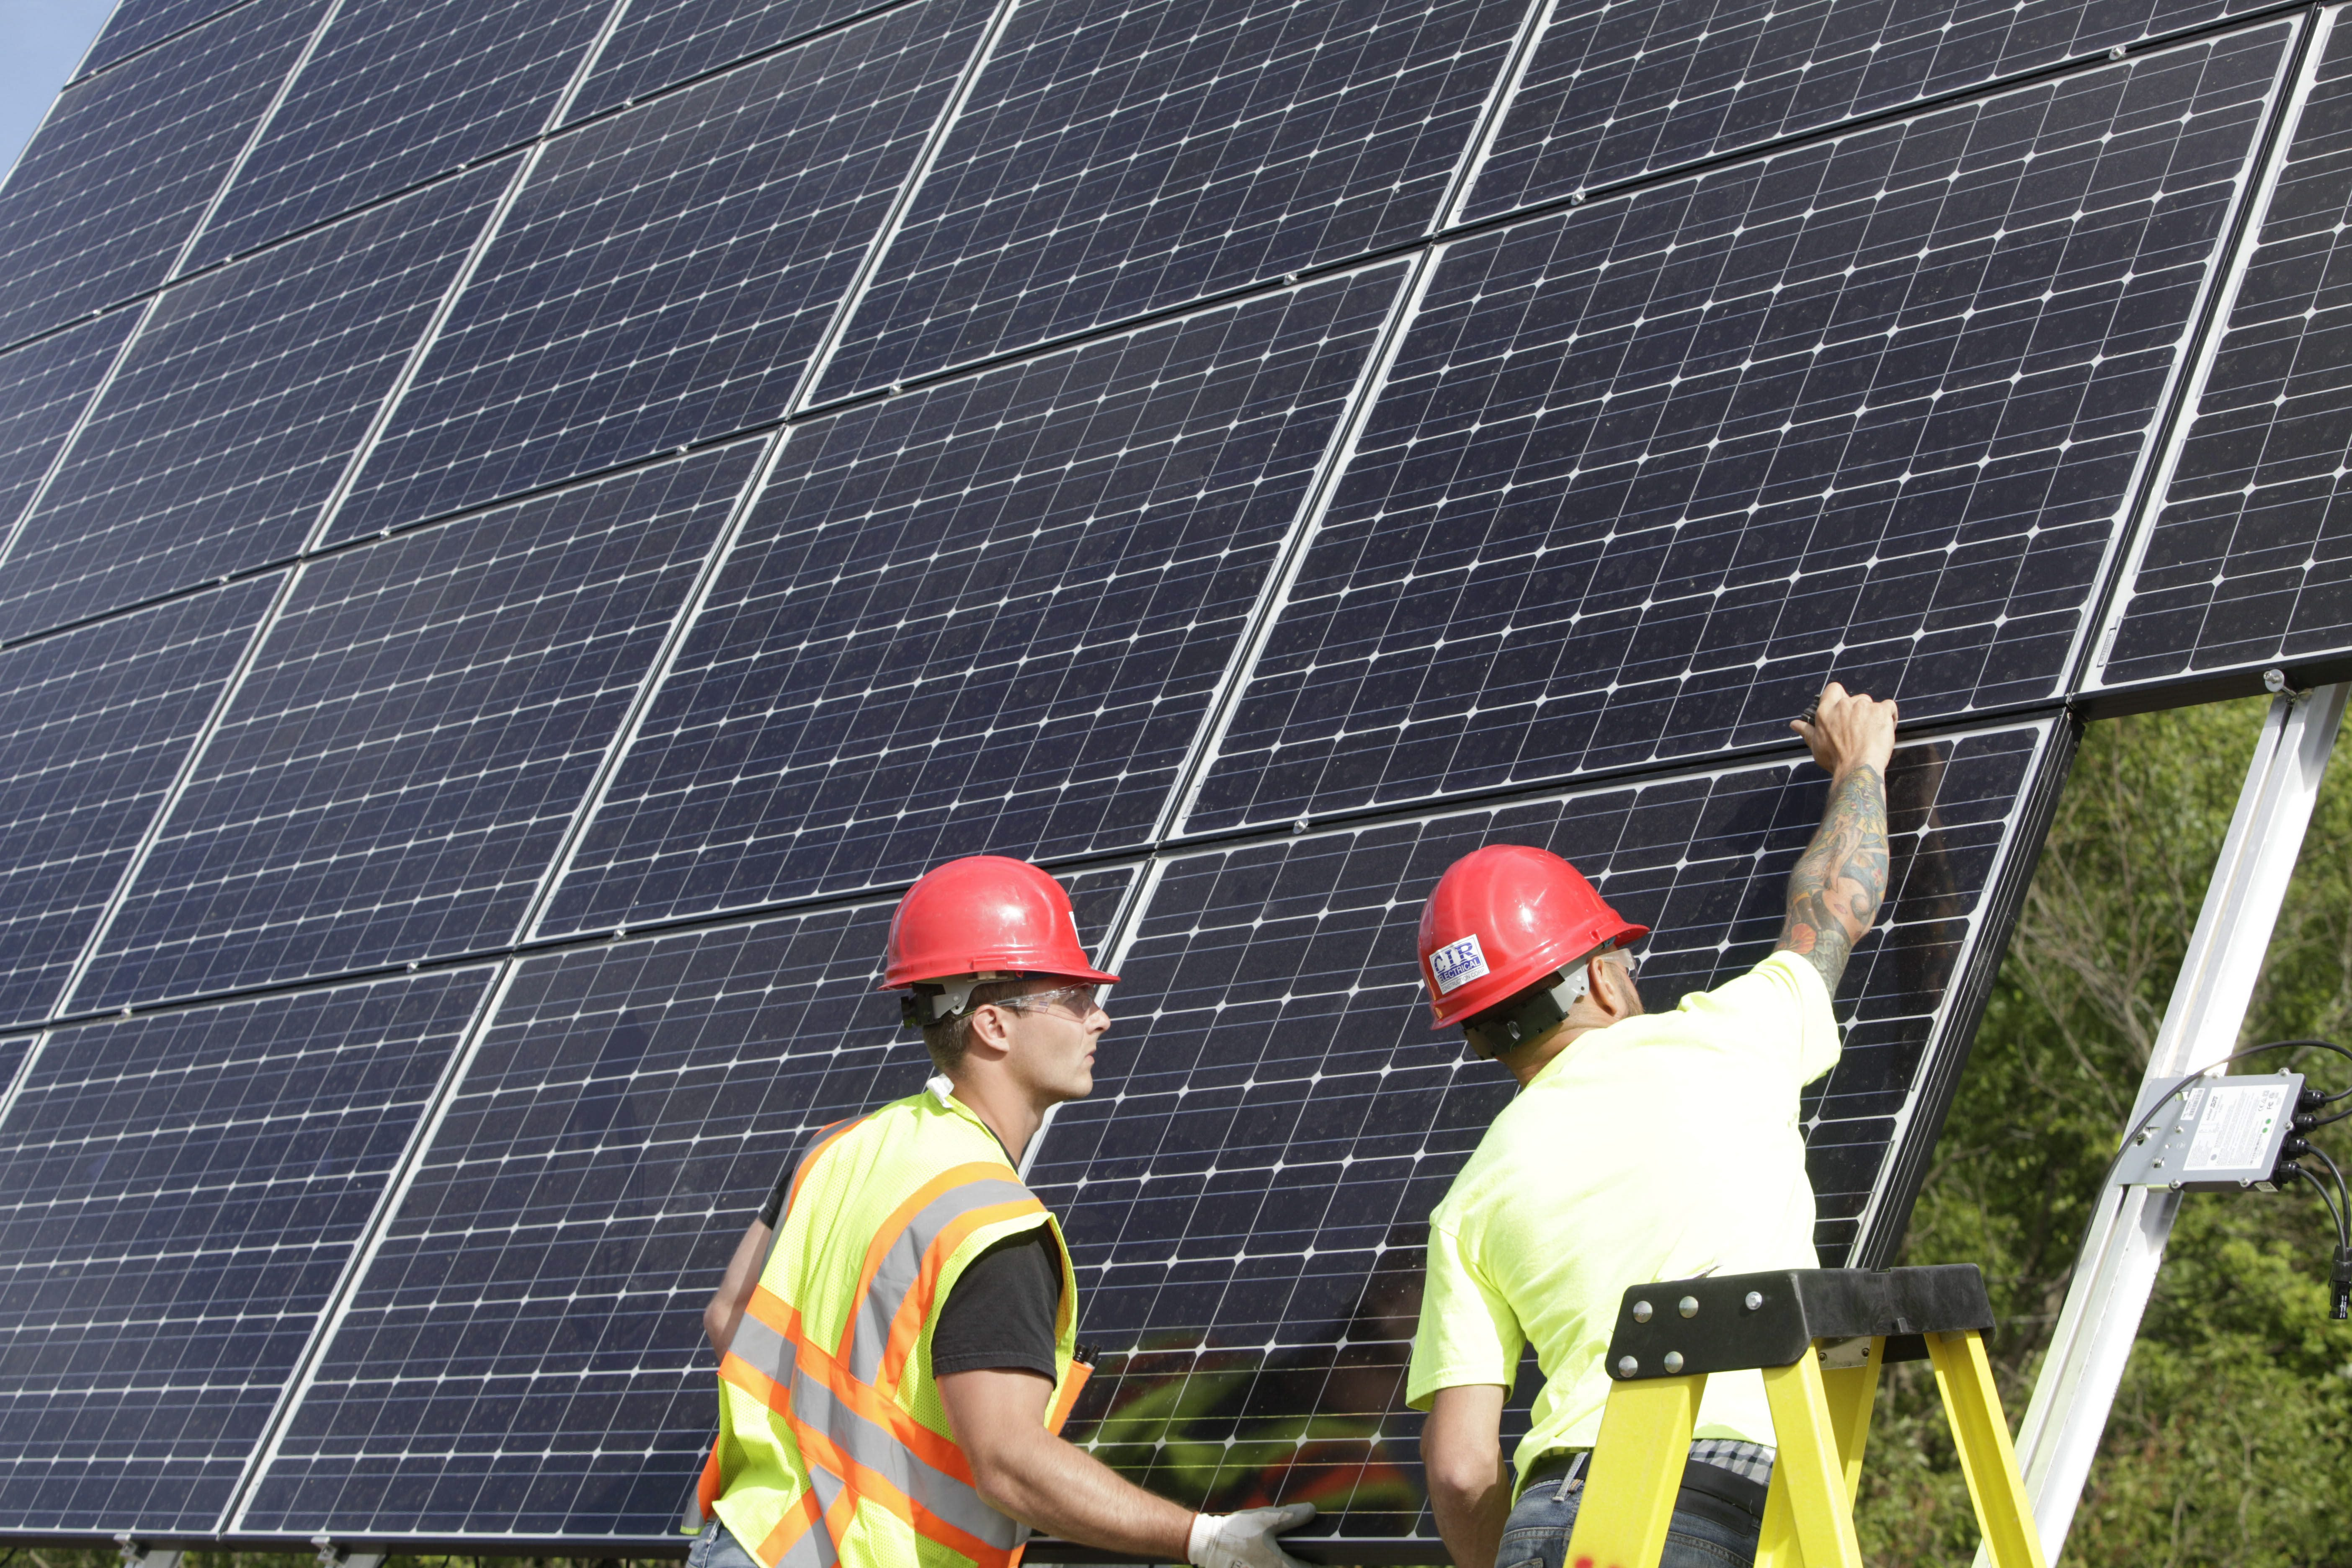 """Edward Sarcione, left, and electrician Joe Kilijanski of CIR Electrical Construction Corp. install an array of solar panels made by Silevo on a """"tracker"""" system that automatically follows the sun to optimize the system's performance at a residence in Marilla, Friday, June 20, 2014.  (Derek Gee/Buffalo News)"""